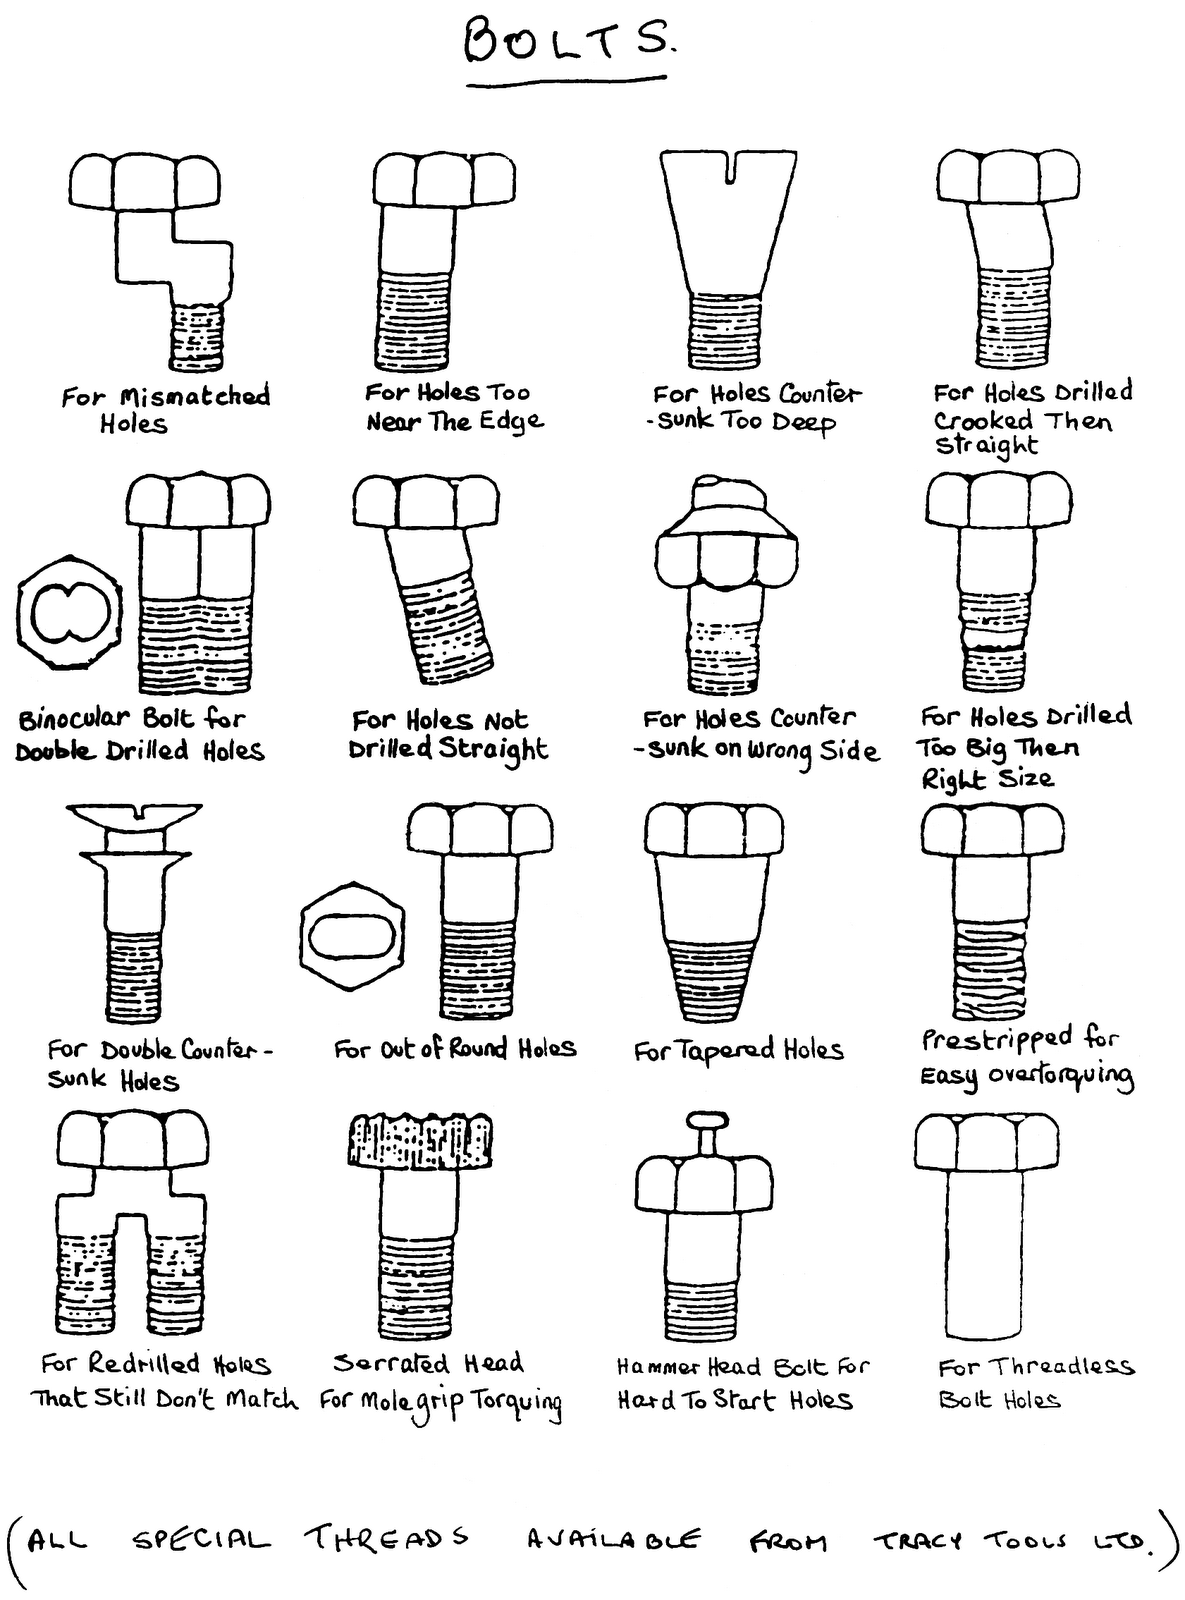 21 Science Engineering And Math Cartoons For May 21st